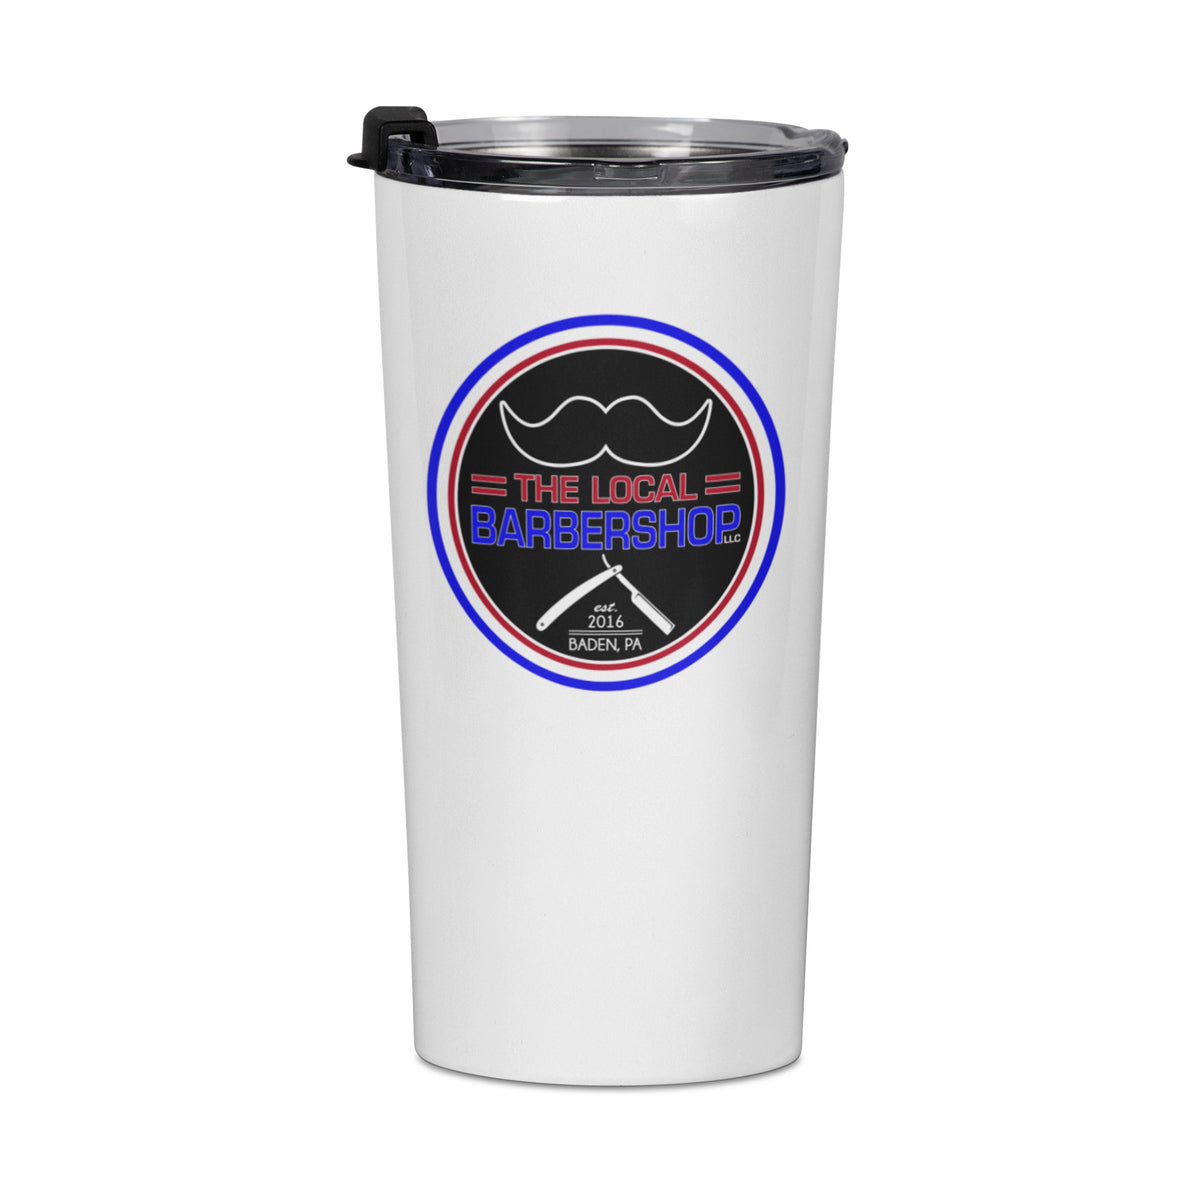 The Local Barbershop We Support PA Travel Mug